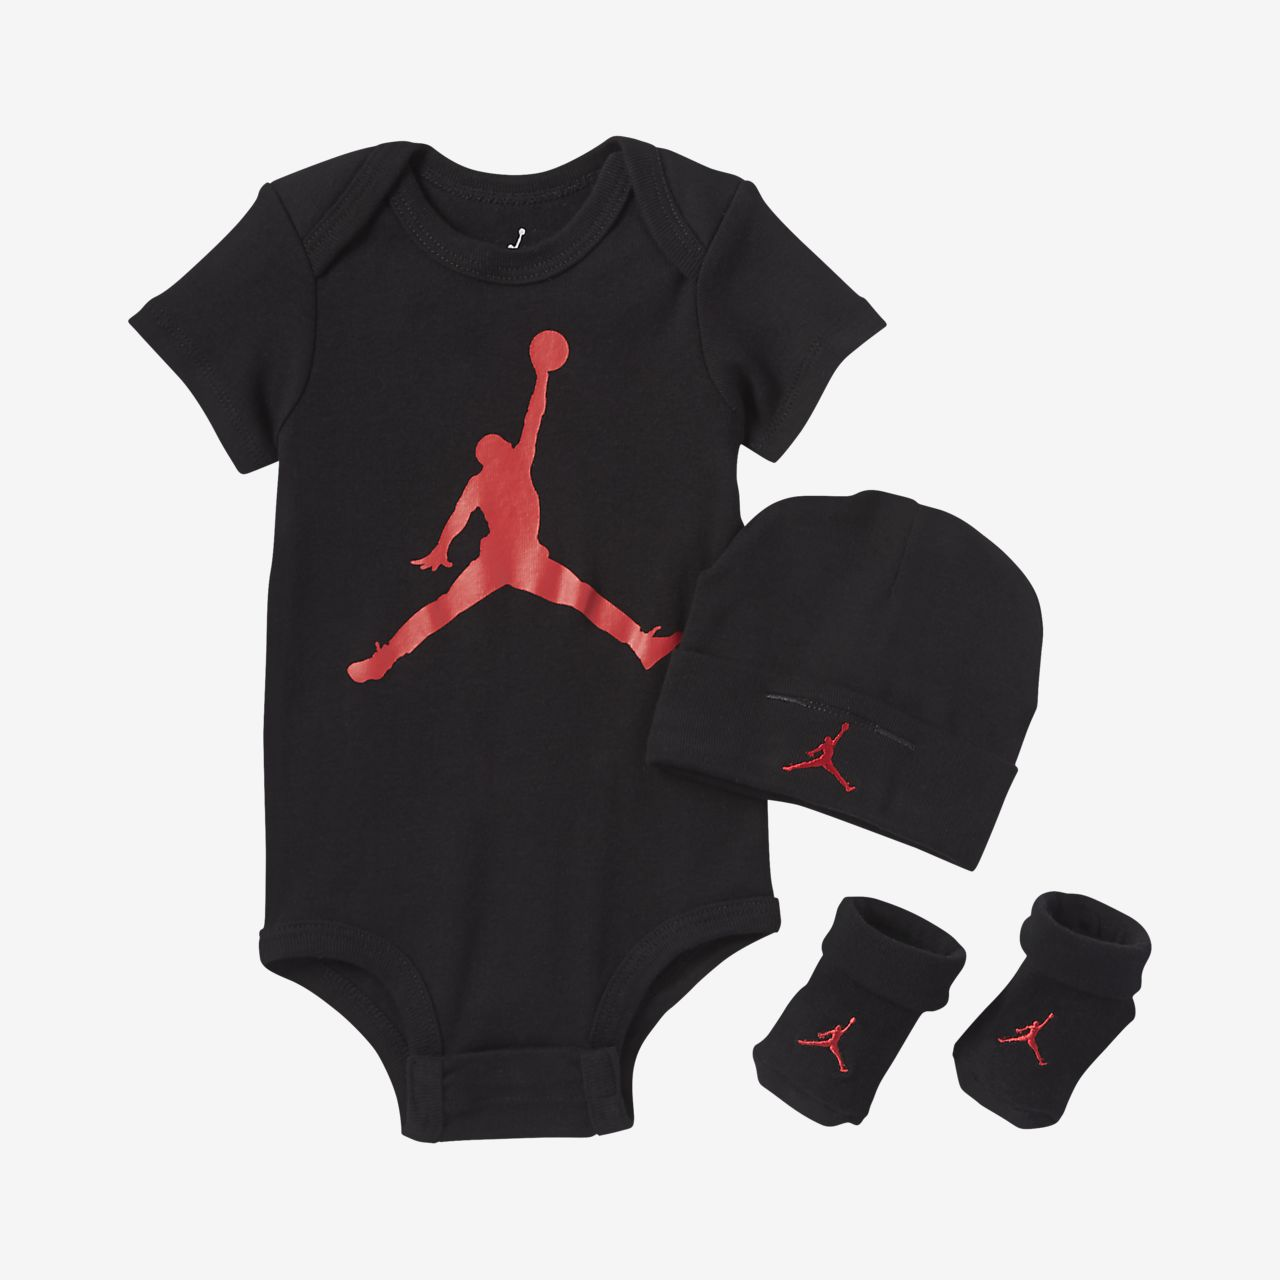 98b052978d85 Jordan Infant 3-Piece Set. Nike.com